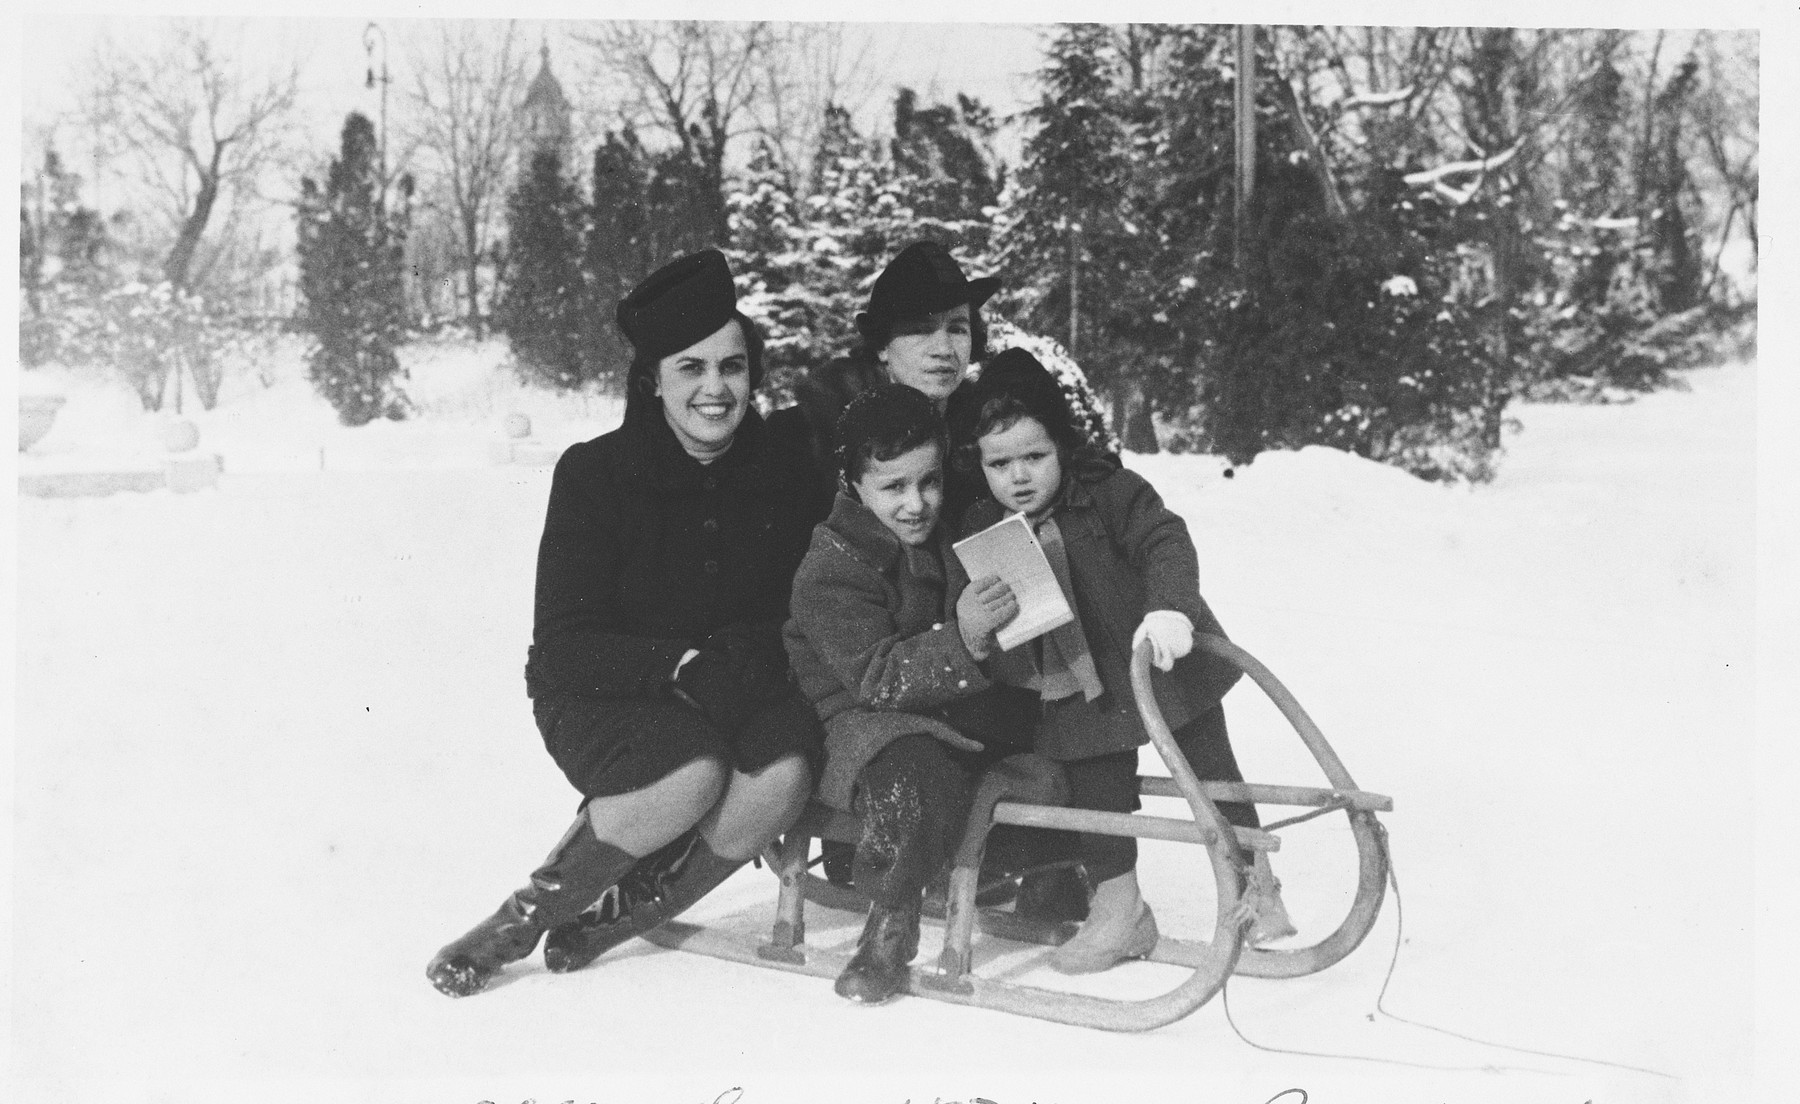 A Jewish family poses outside in the snow on a sled.  Pictured are Mimi Altarac (left) with her children, Jasa and Lela, and a female friend or relative.